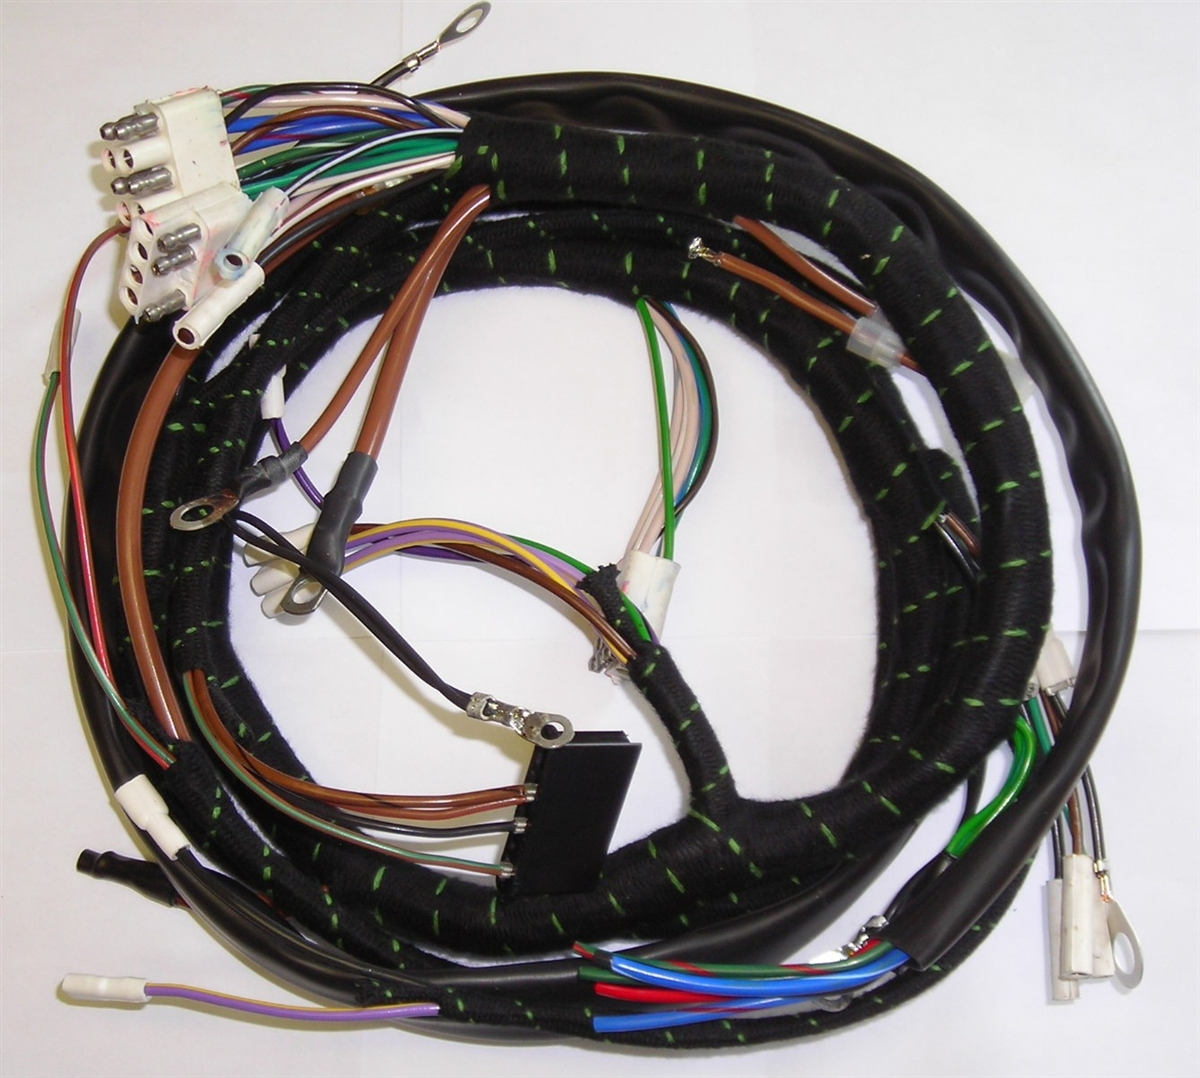 jaguar wiring harness electrical diagrams forum u2022 rh jimmellon co uk